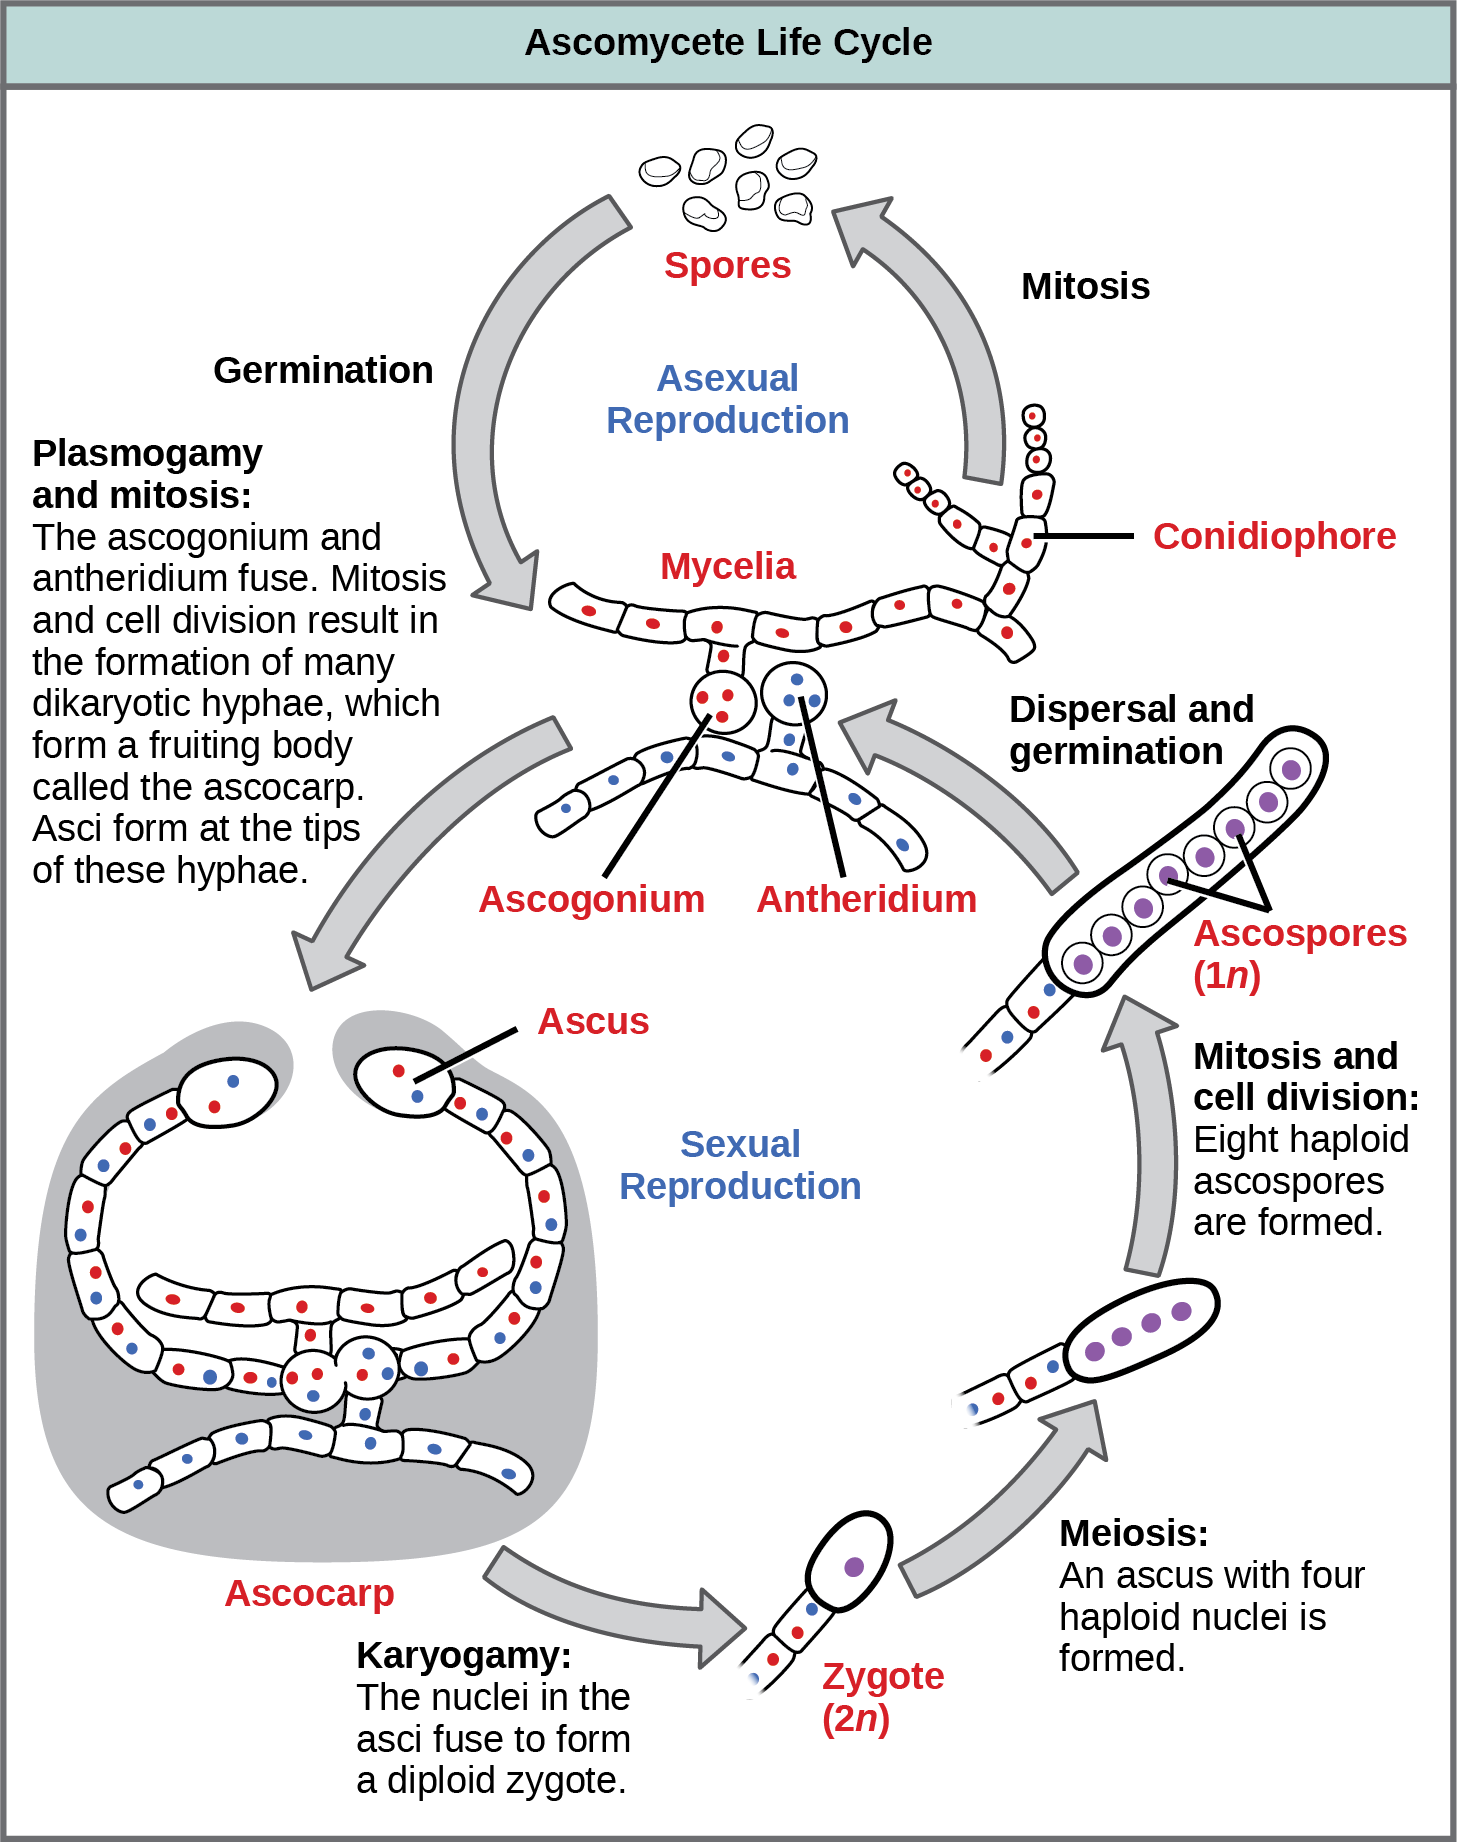 Ascomycetes have both sexual and asexual life cycles. In the asexual life cycle, the haploid (1n) mycelium branches into a chain of cells called the conidiophore. Spores bud from the end of the conidiophore and germinate to form more mycelia. In the sexual life cycle, a round structure called an antheridium buds from the male strain, and a similar structure called the ascogonium buds from the female strain. In a process called plasmogamy, the ascogonium and antheridium fuse to form a cell with multiple haploid nuclei. Mitosis and cell division result in the growth of many hyphae, which form a fruiting body called the ascocarp. The hyphae are dikaryotic, meaning they have two haploid nuclei. Asci form at the tips of these hyphae. In a process called karyogamy, the nuclei in the asci fuse to form a diploid (2n) zygote. The zygote undergoes meiosis without cell division, resulting in an ascus with four 1n nuclei arranged in a row. Each nucleus undergoes mitosis, resulting in eight ascospores, which are also arranged in a row at the tip of the hyphae. Dispersal and germination results in the growth of new mycelia.